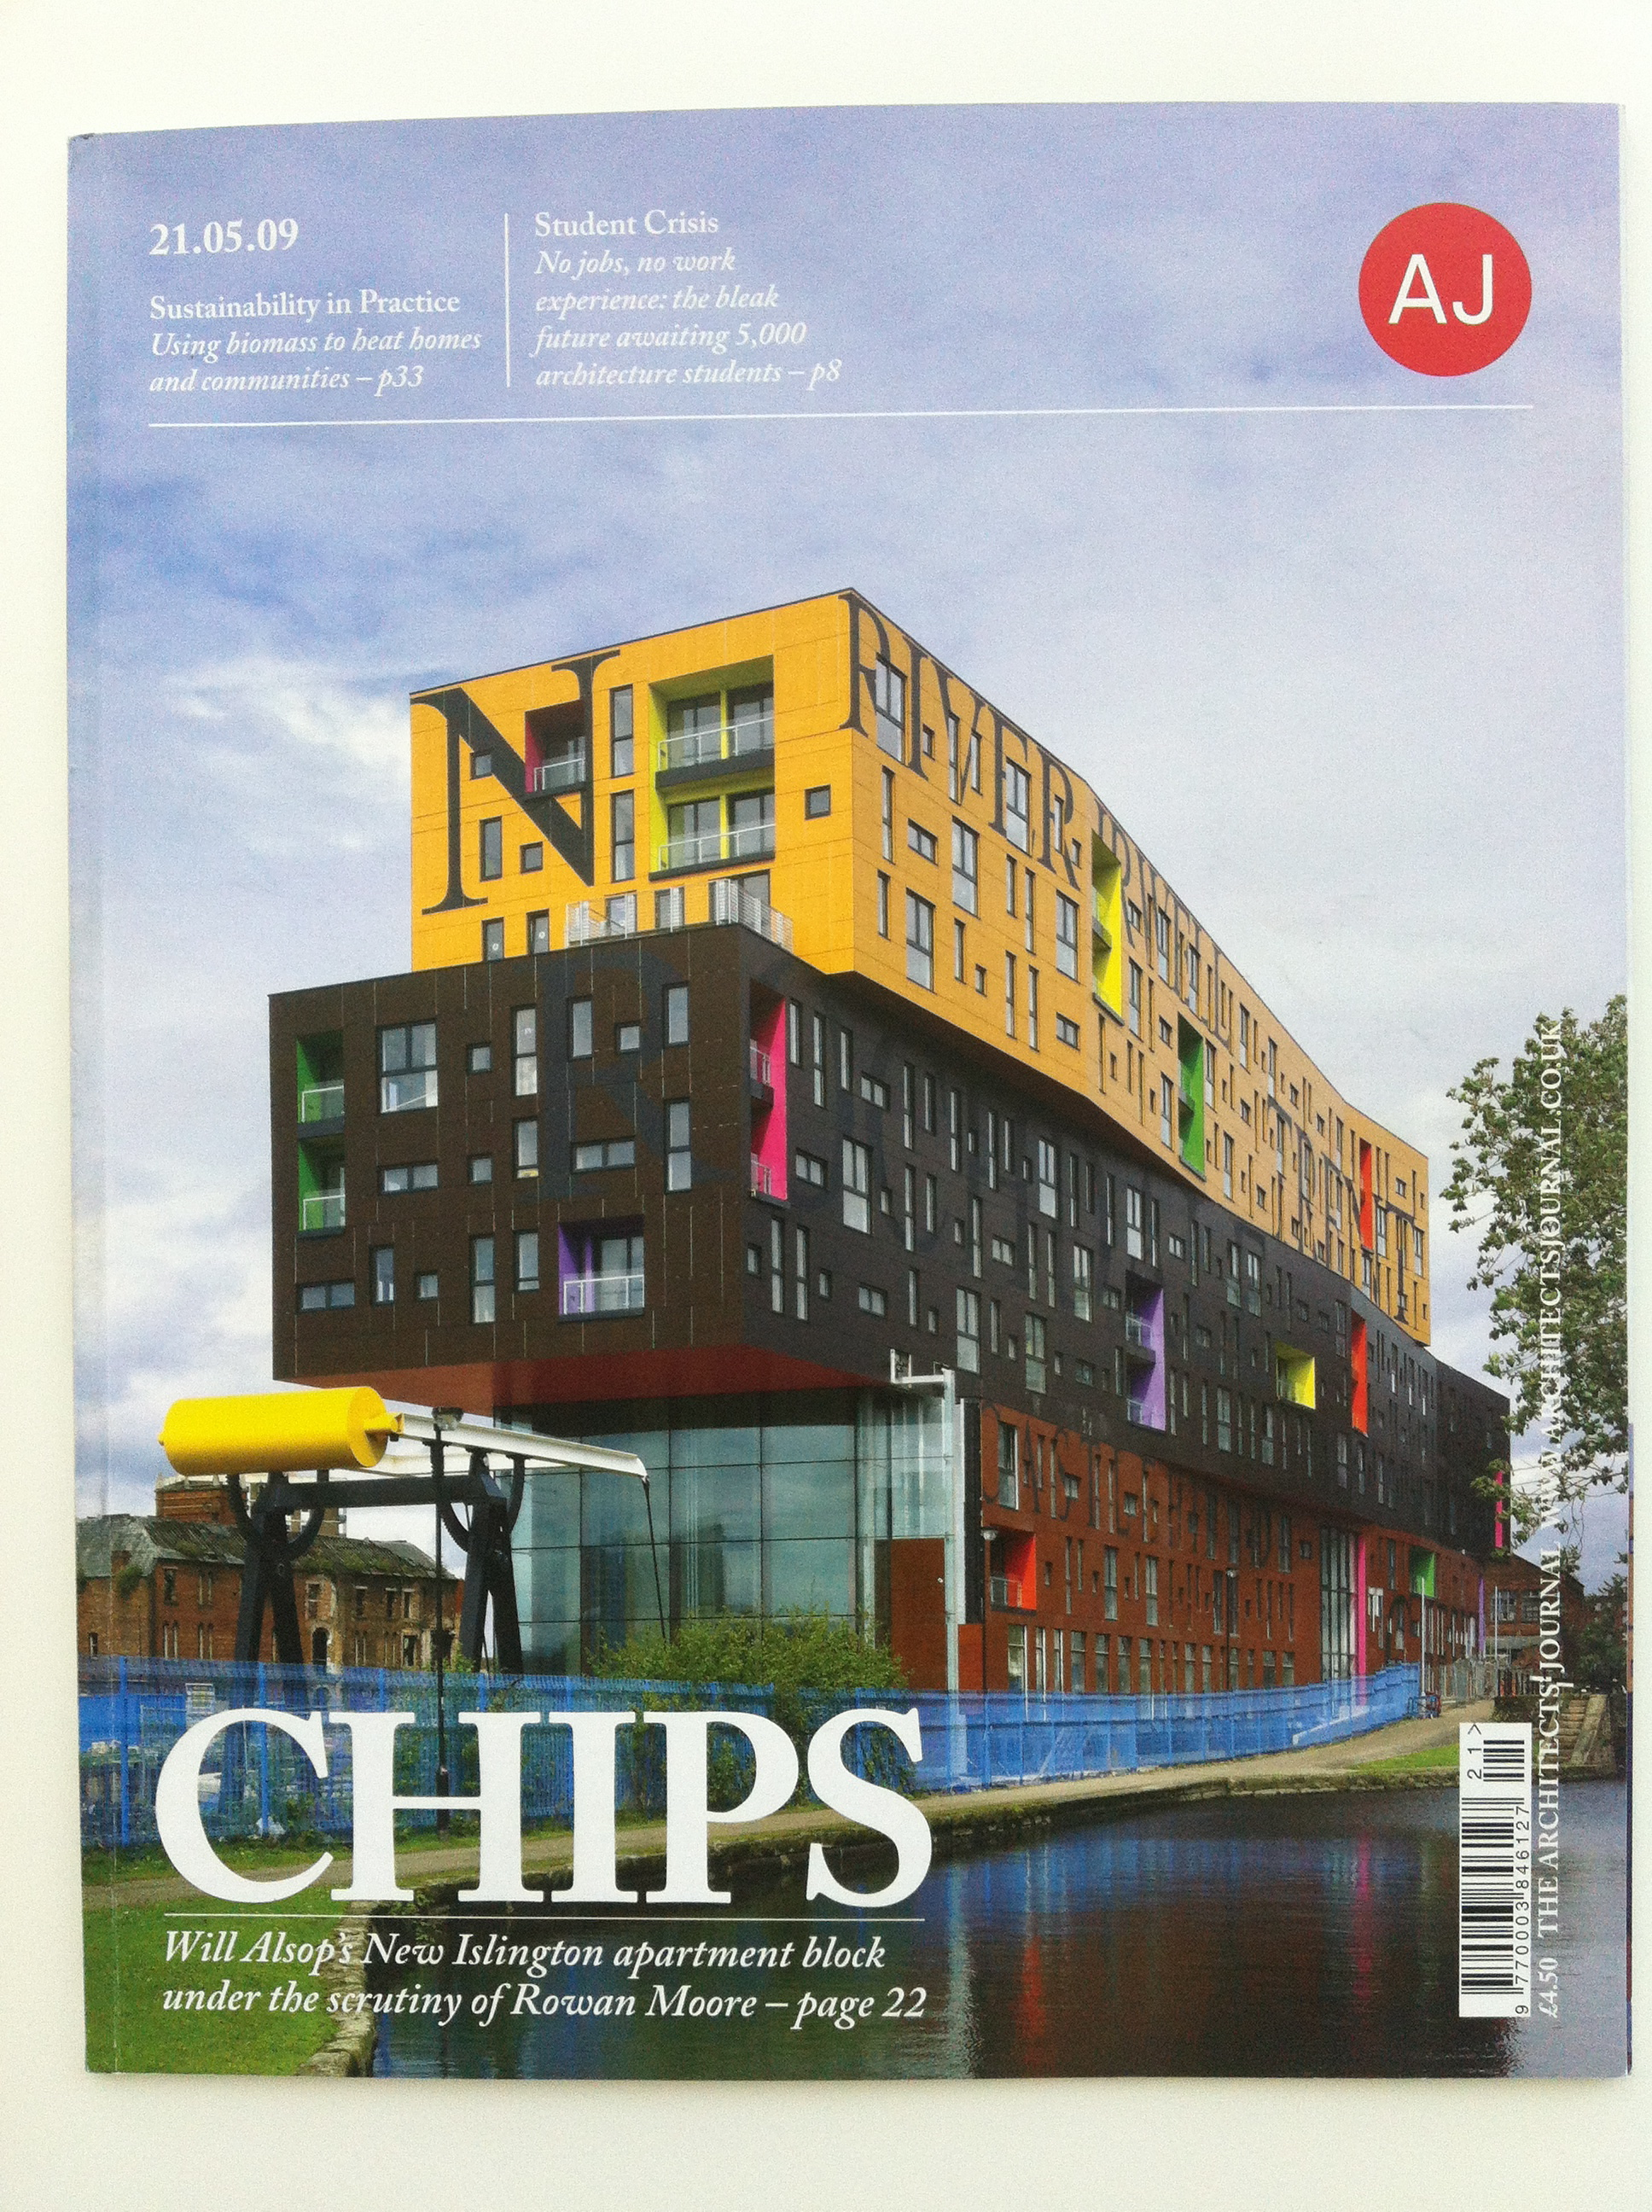 VG's work at Arup Associates London for Coventry University of Computing and Engineering